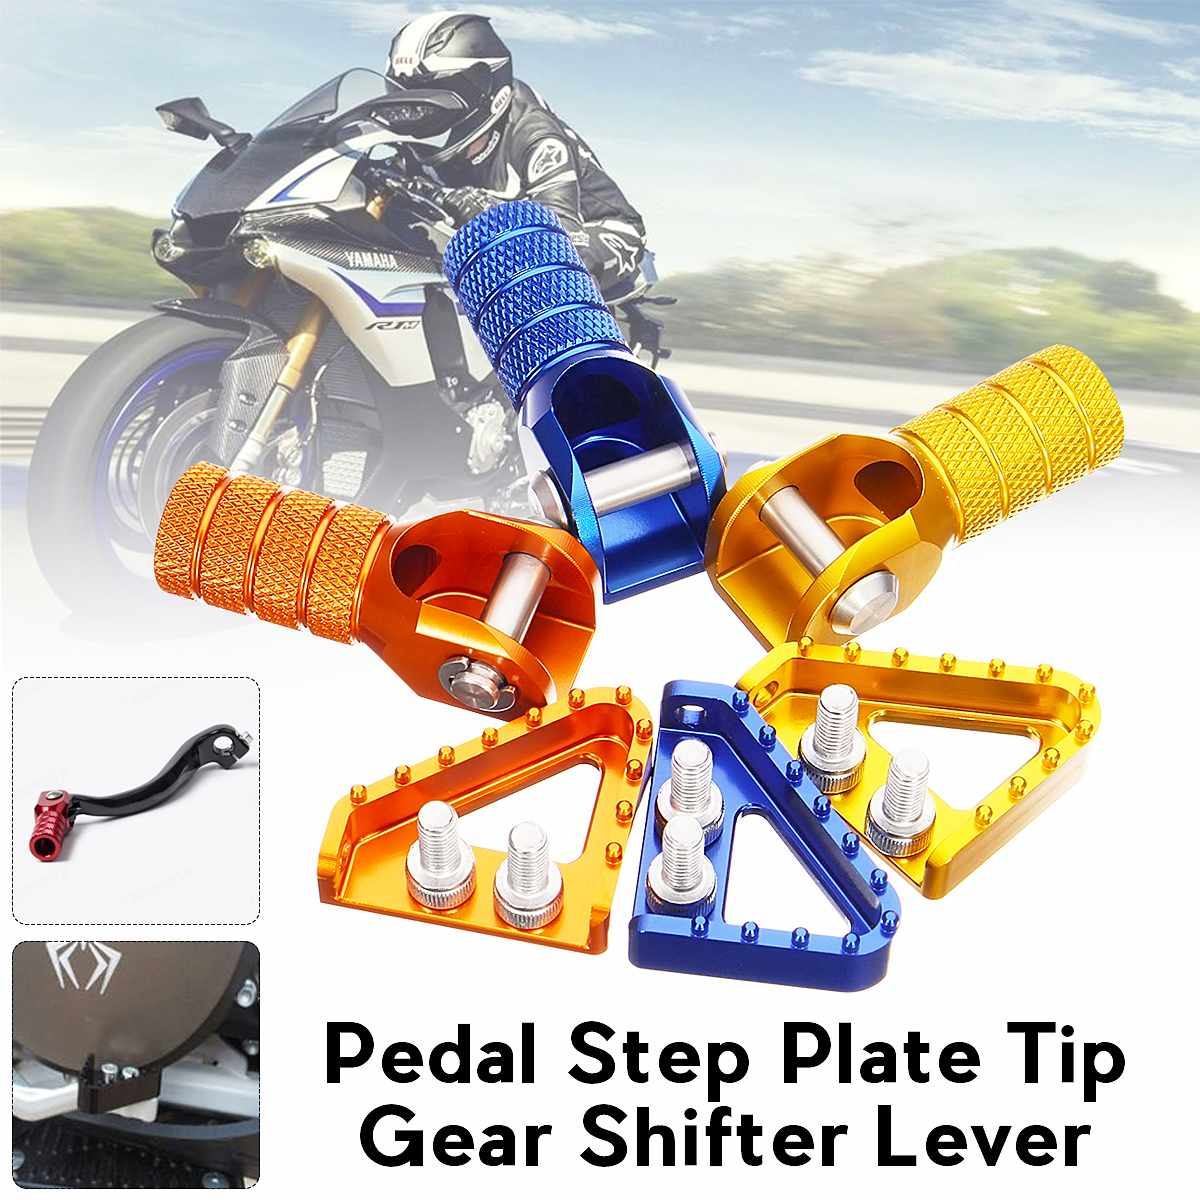 Universal Rear Brake Pedal Motorcycle Step Plate Tip With Gear Shifter Motorcycle Shift Lever For KTM 125-530 Enduro Motocross